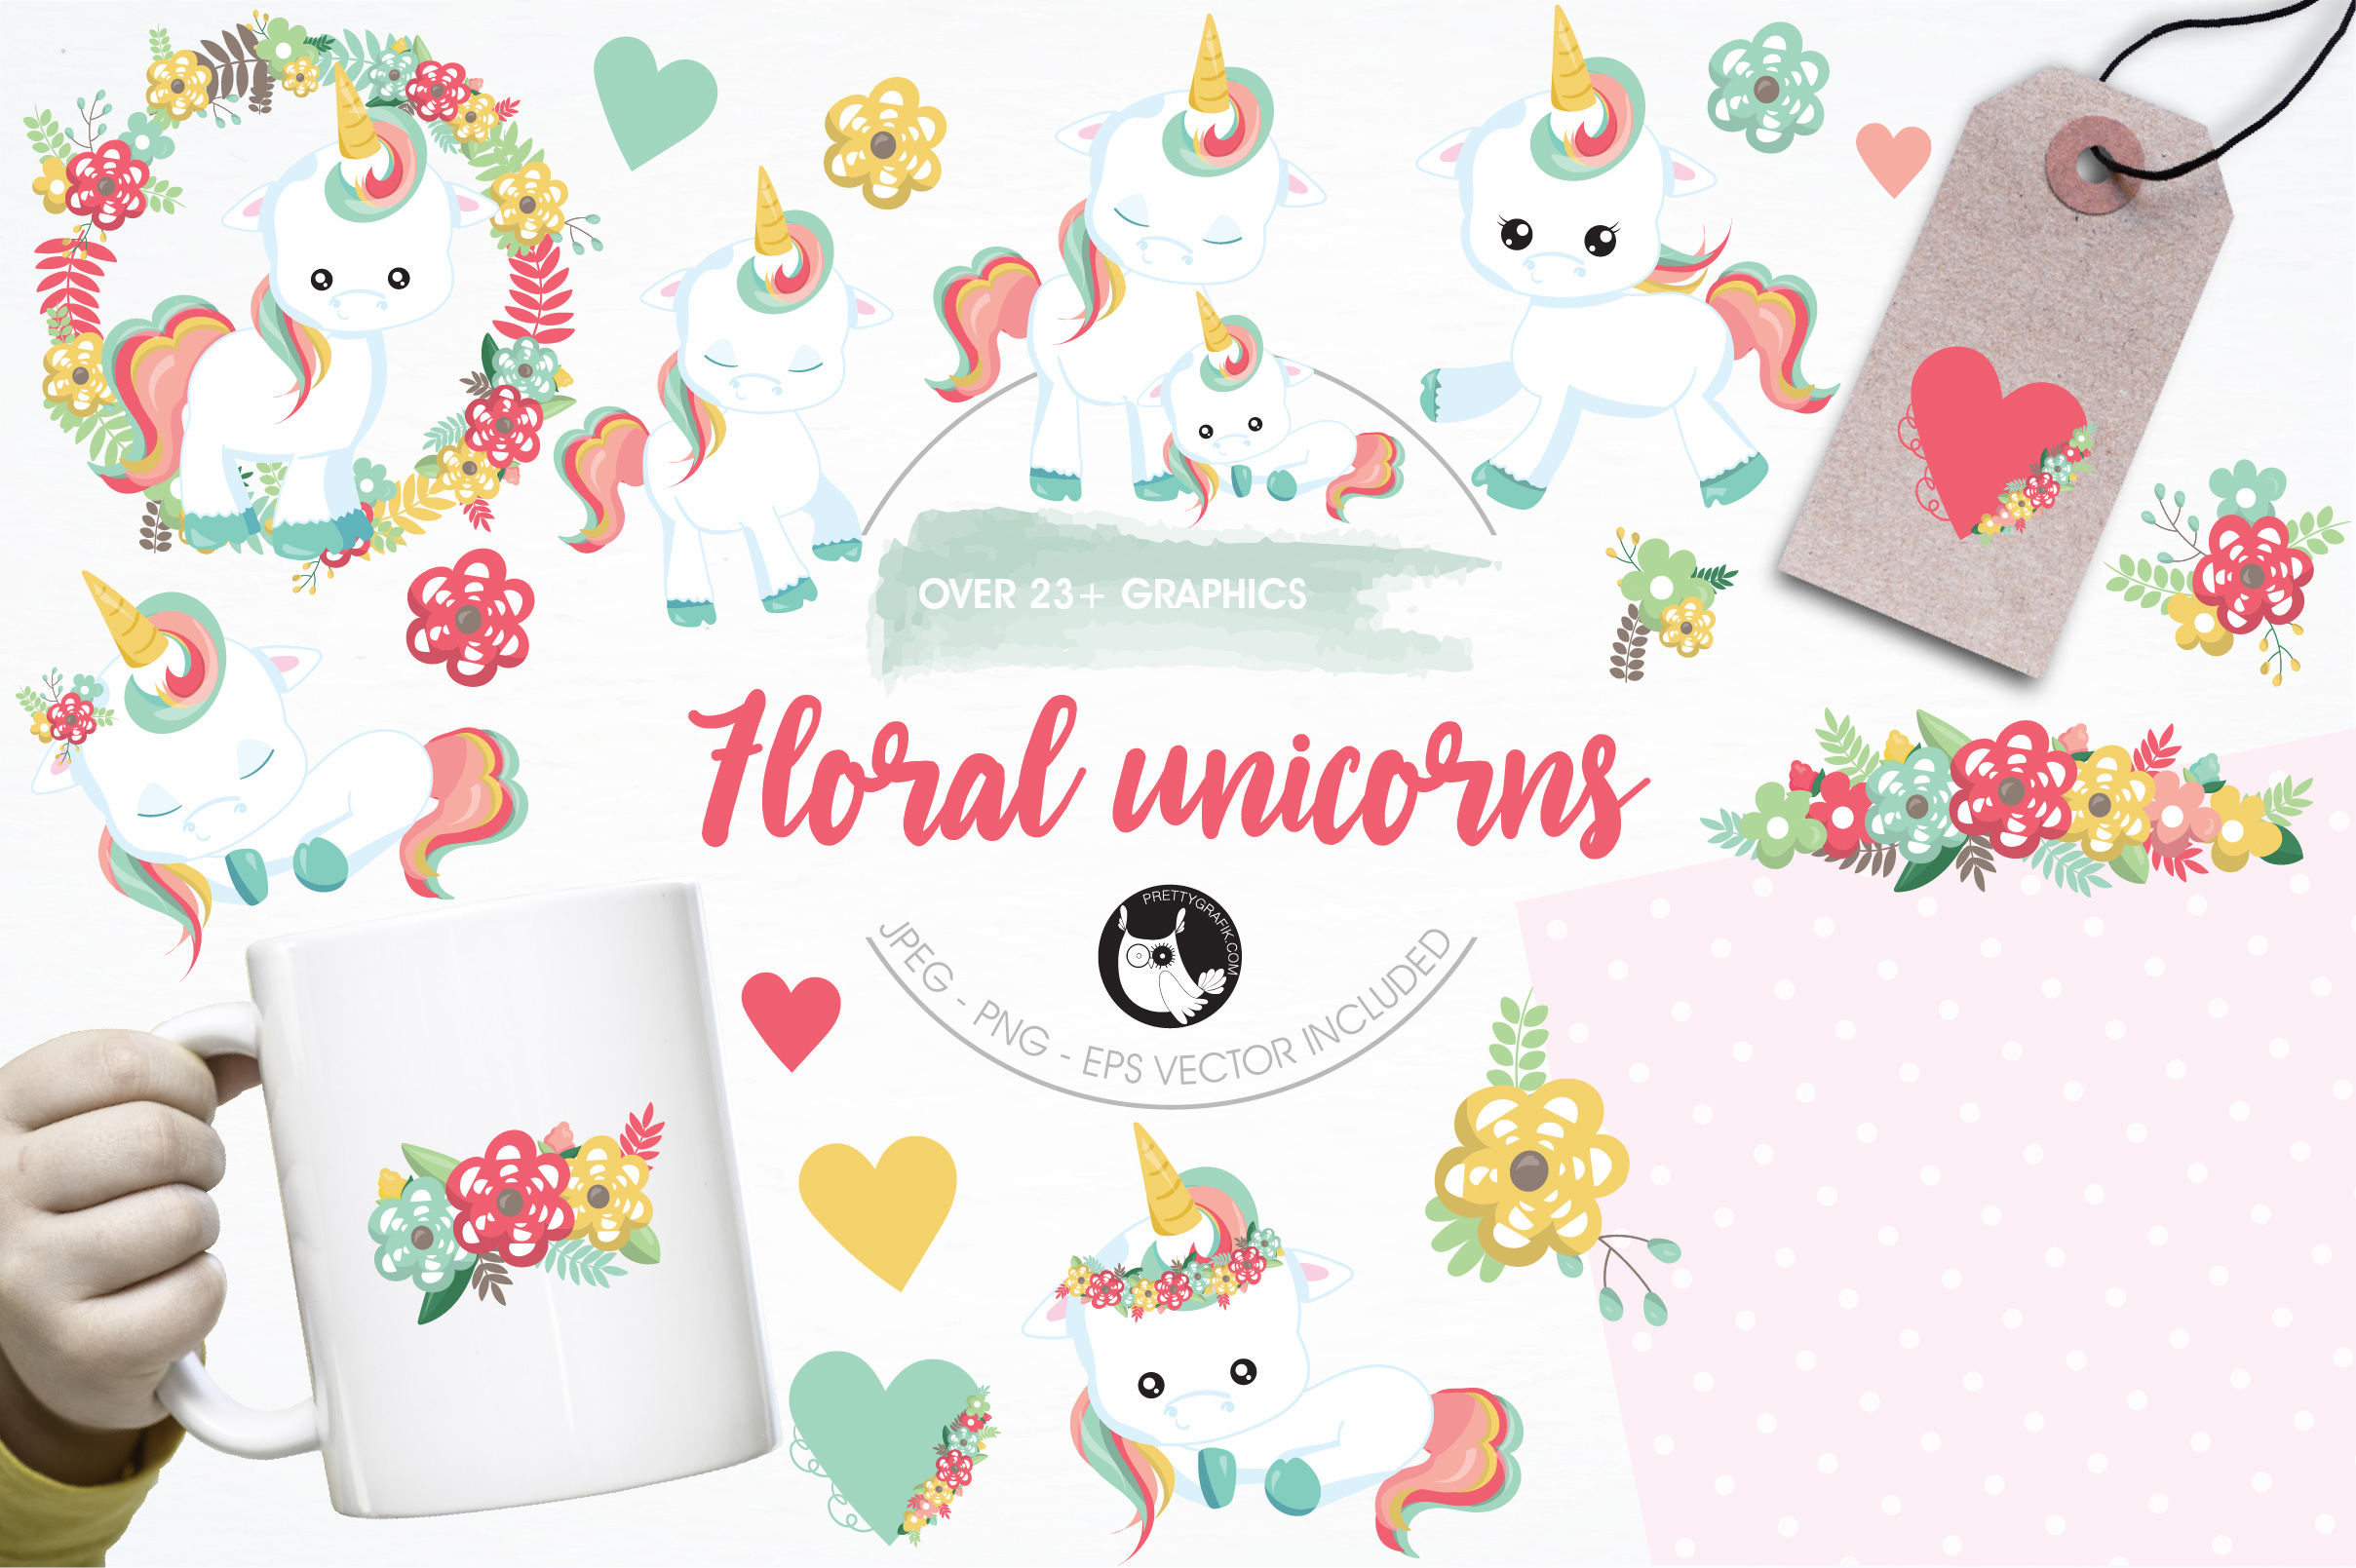 Floral unicorn graphics and illustrations example image 1